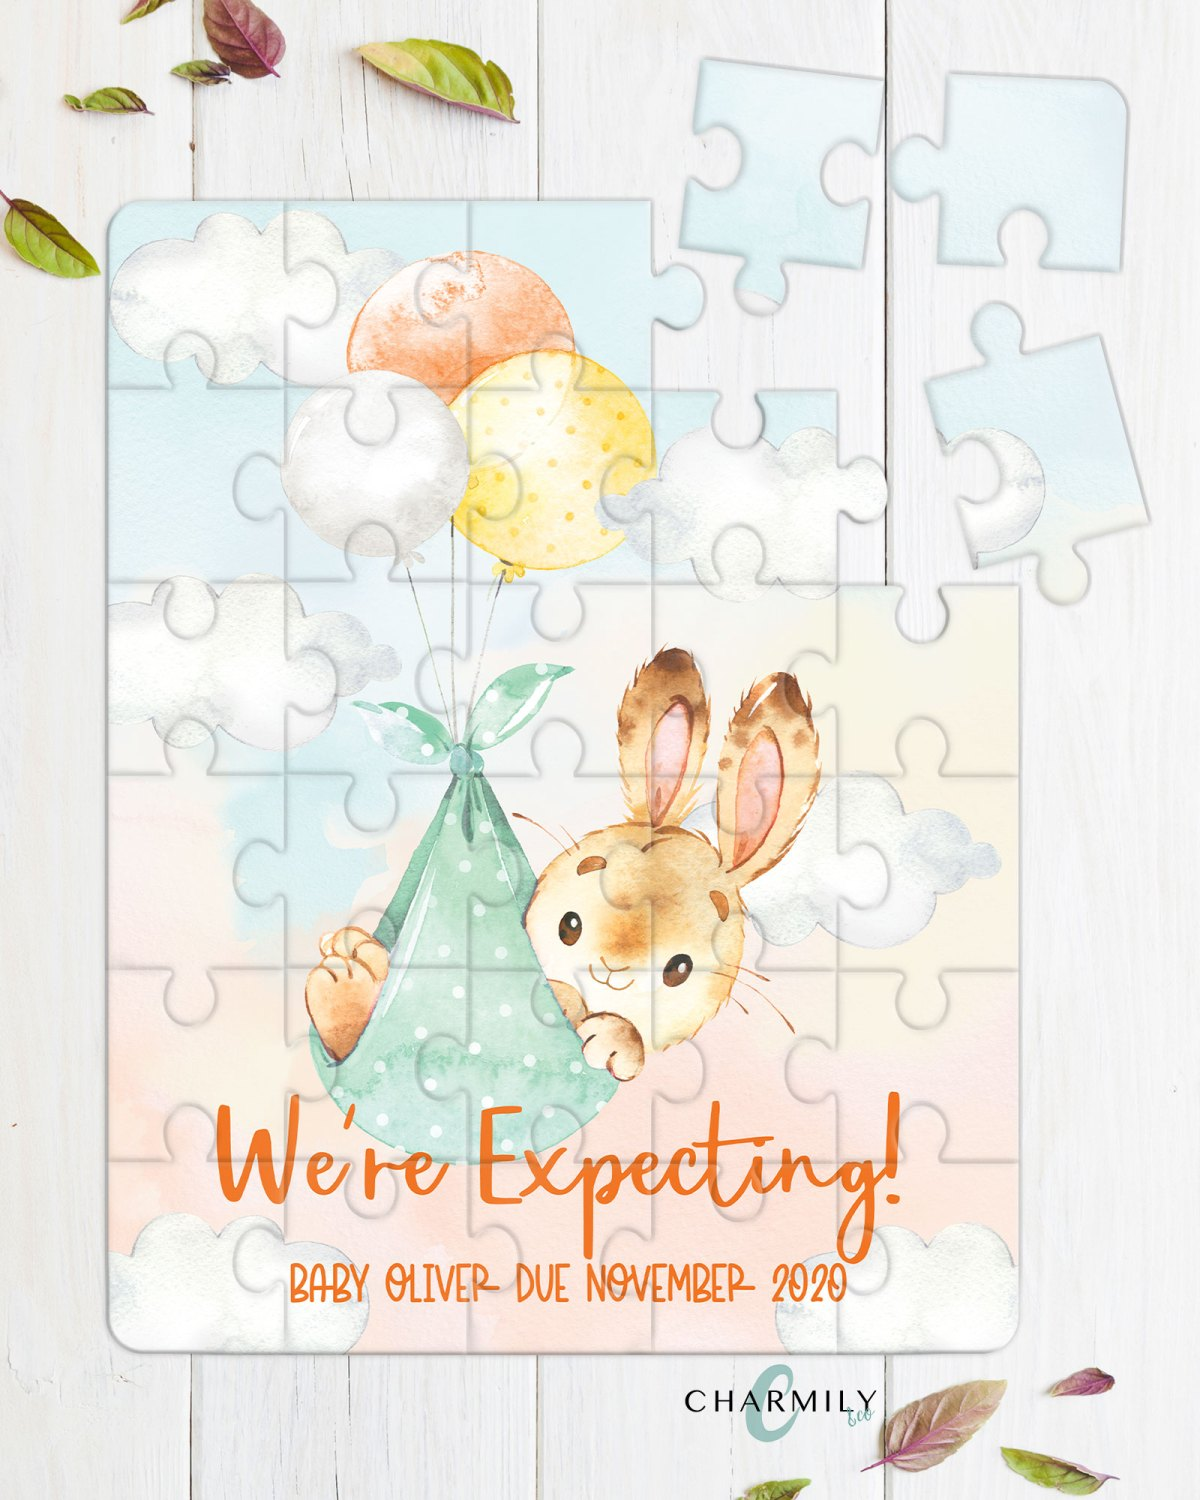 Bunny-expecting-Puzzle-Mockup